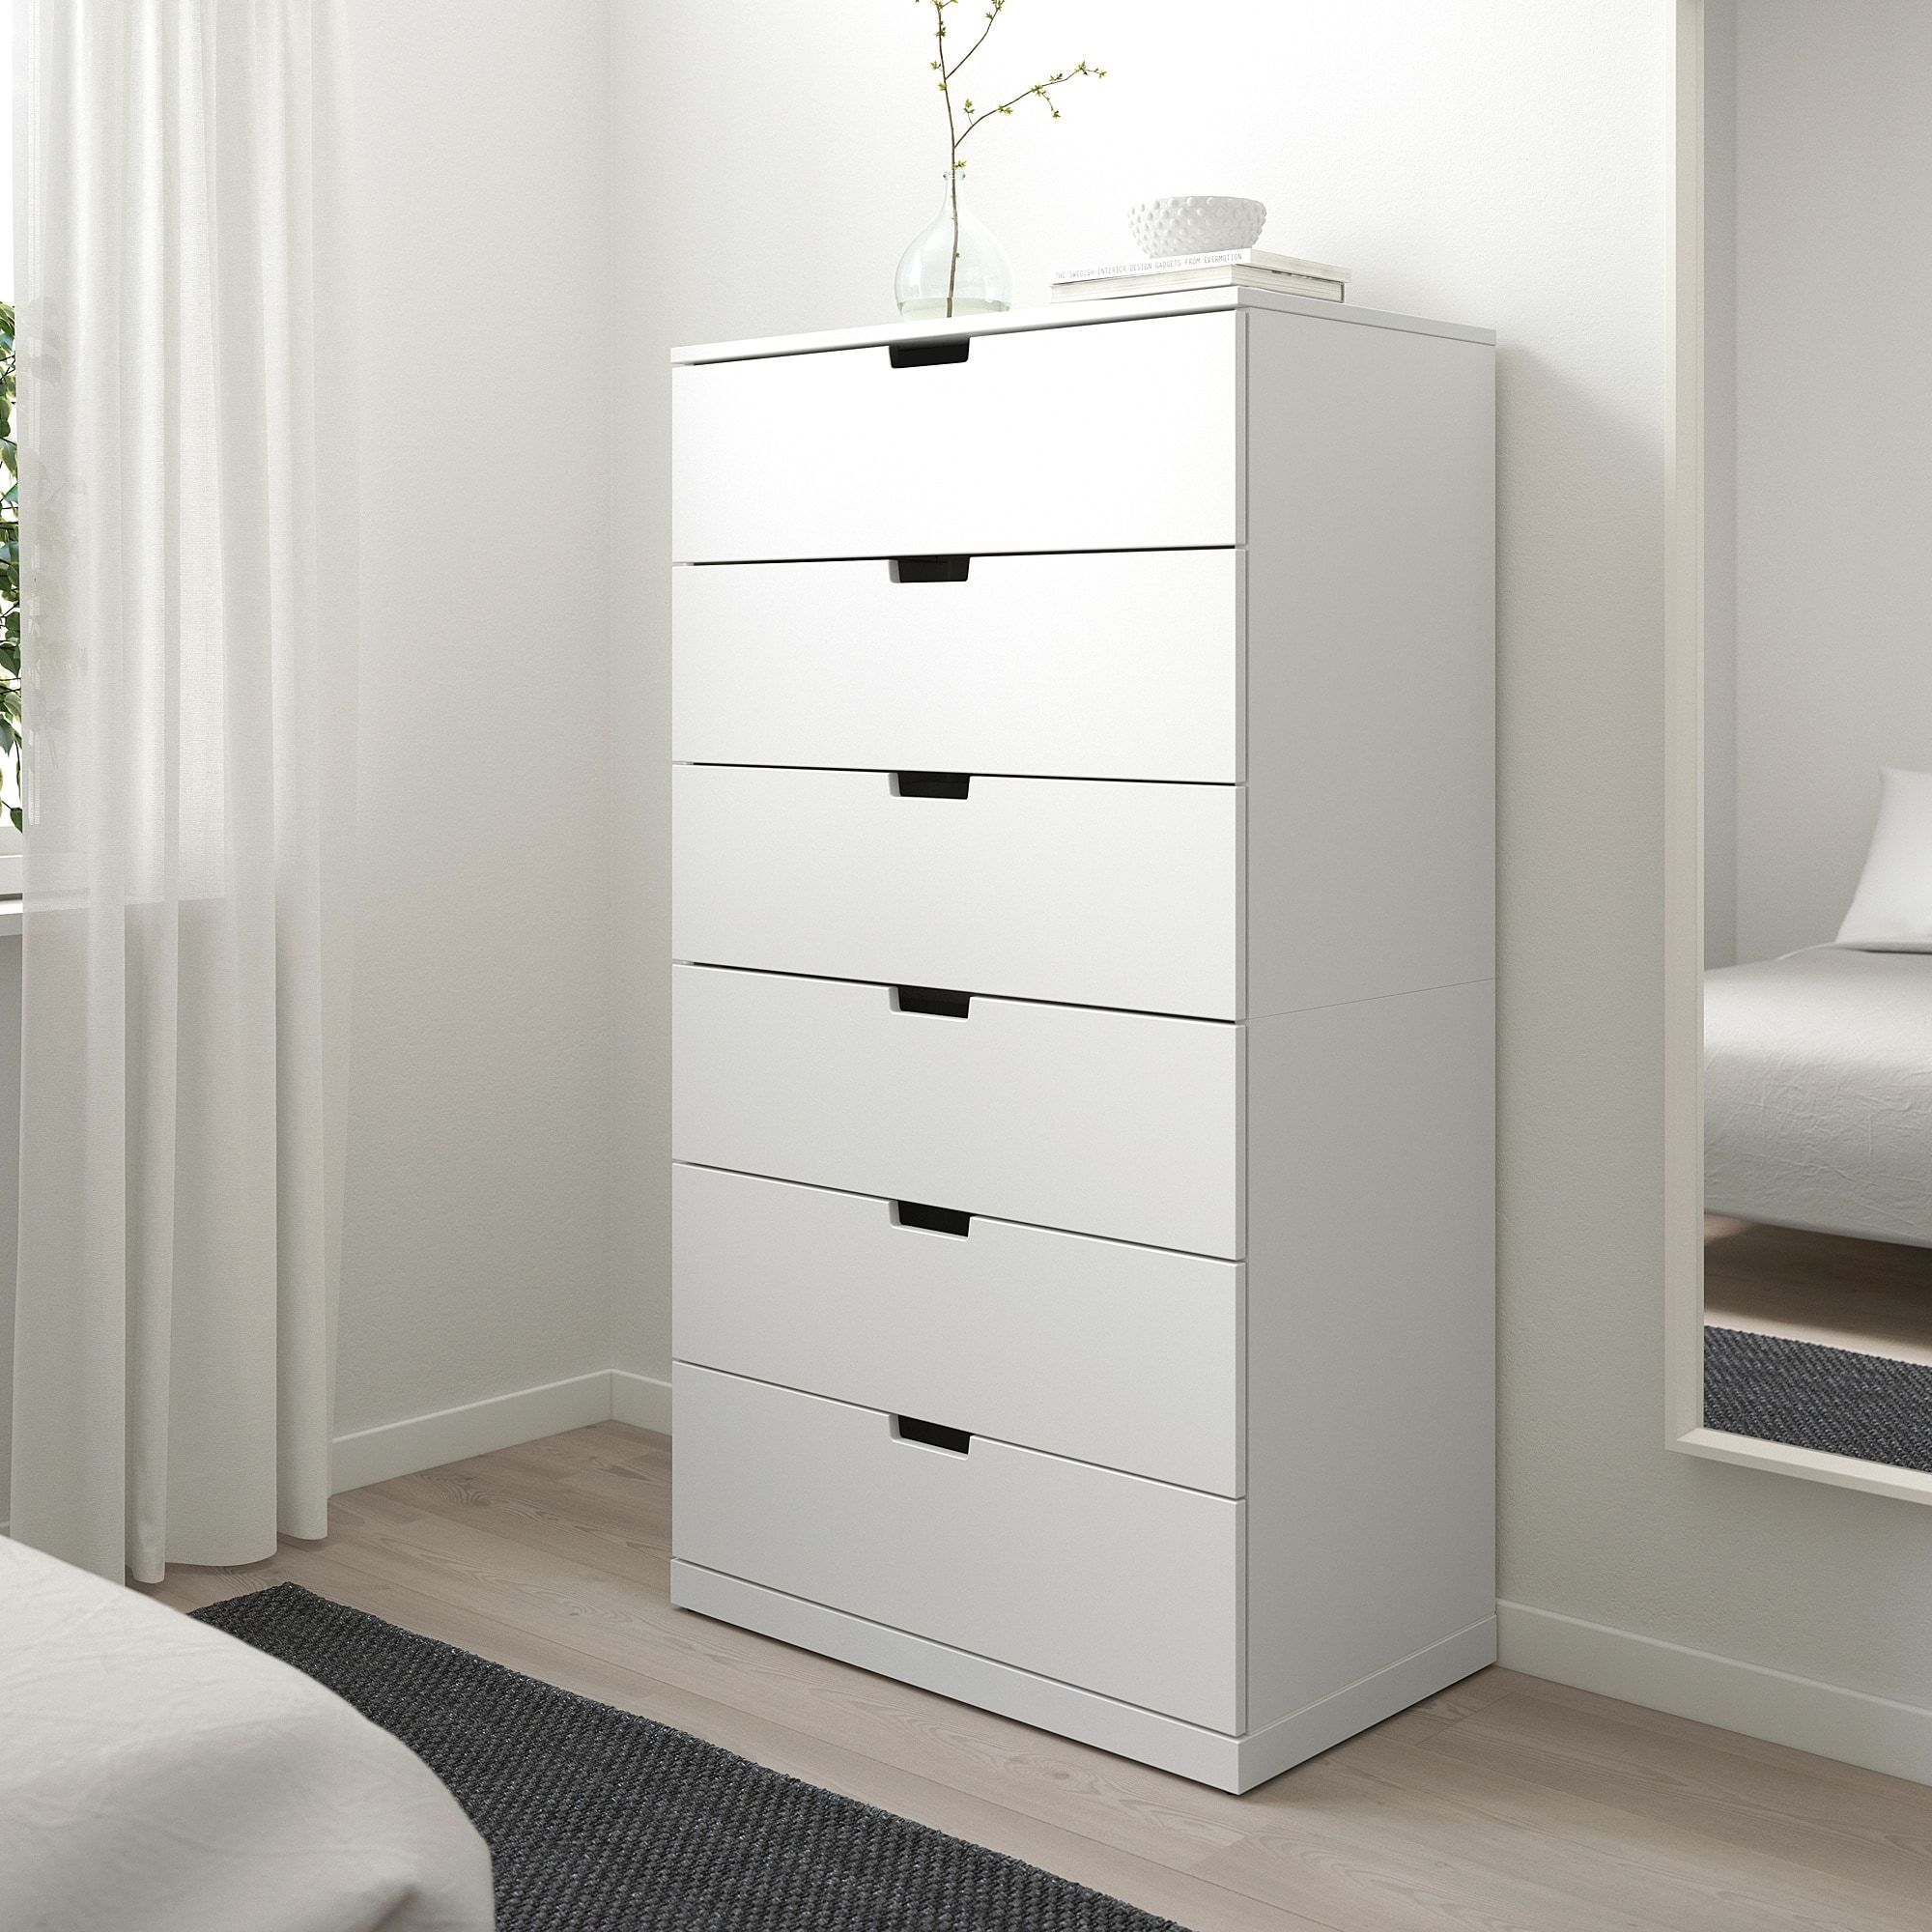 Nordli White Chest Of 6 Drawers 80x145 Cm Ikea In 2020 Ikea Nordli 6 Drawer Chest Chest Of Drawers [ 2000 x 2000 Pixel ]